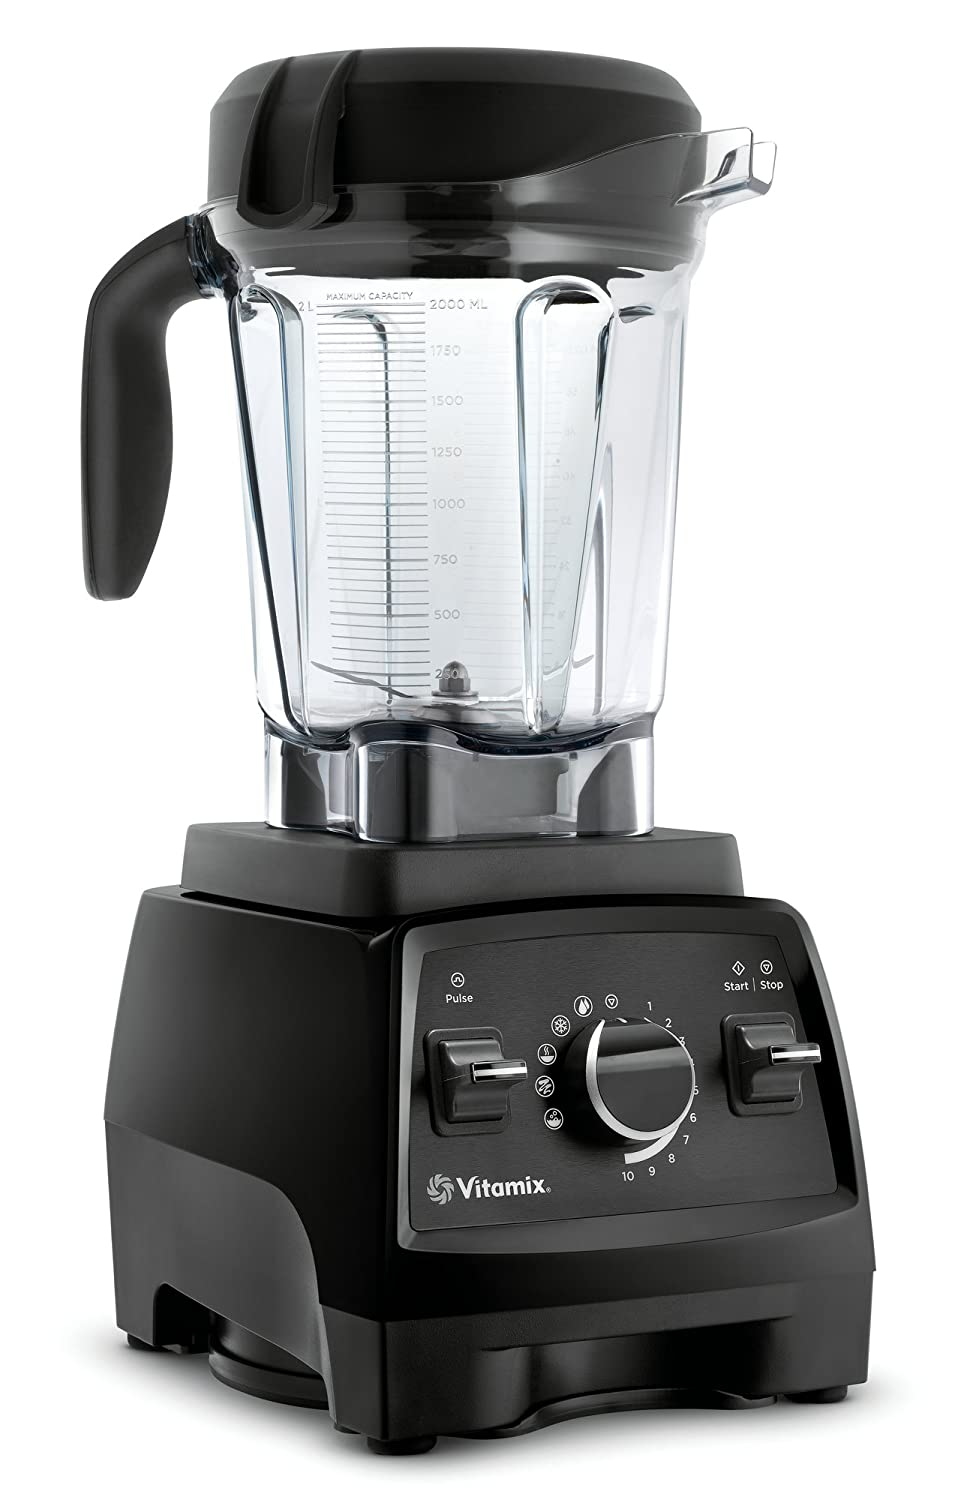 Vitamix Professional Series 750 Blender, Professional-Grade, 64 oz. Low-Profile Container, Black